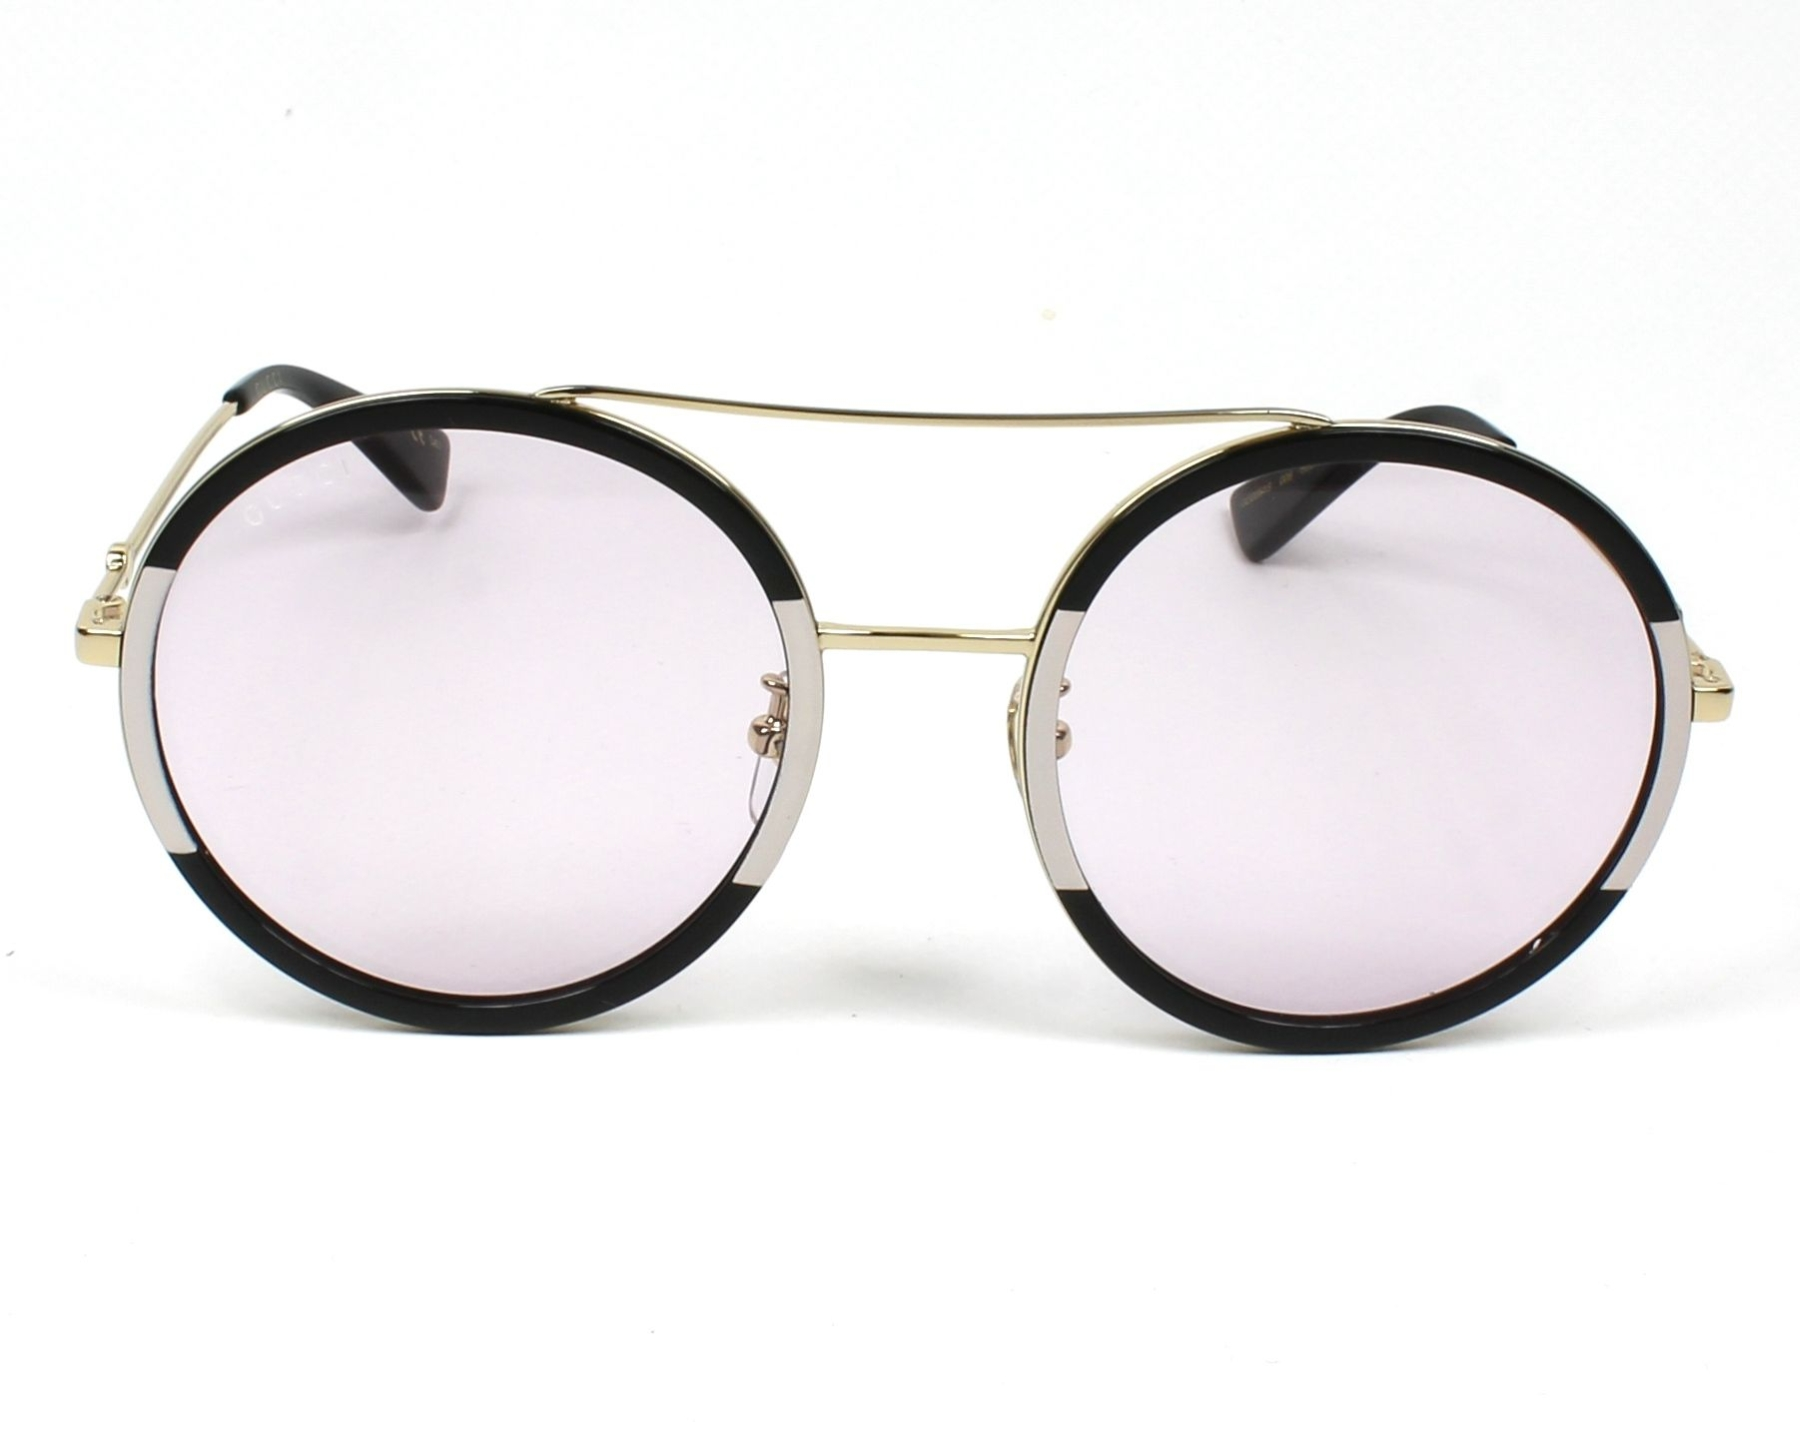 25a29099fe5 Sunglasses Gucci GG-0061-S 006 56-22 Black Pink front view